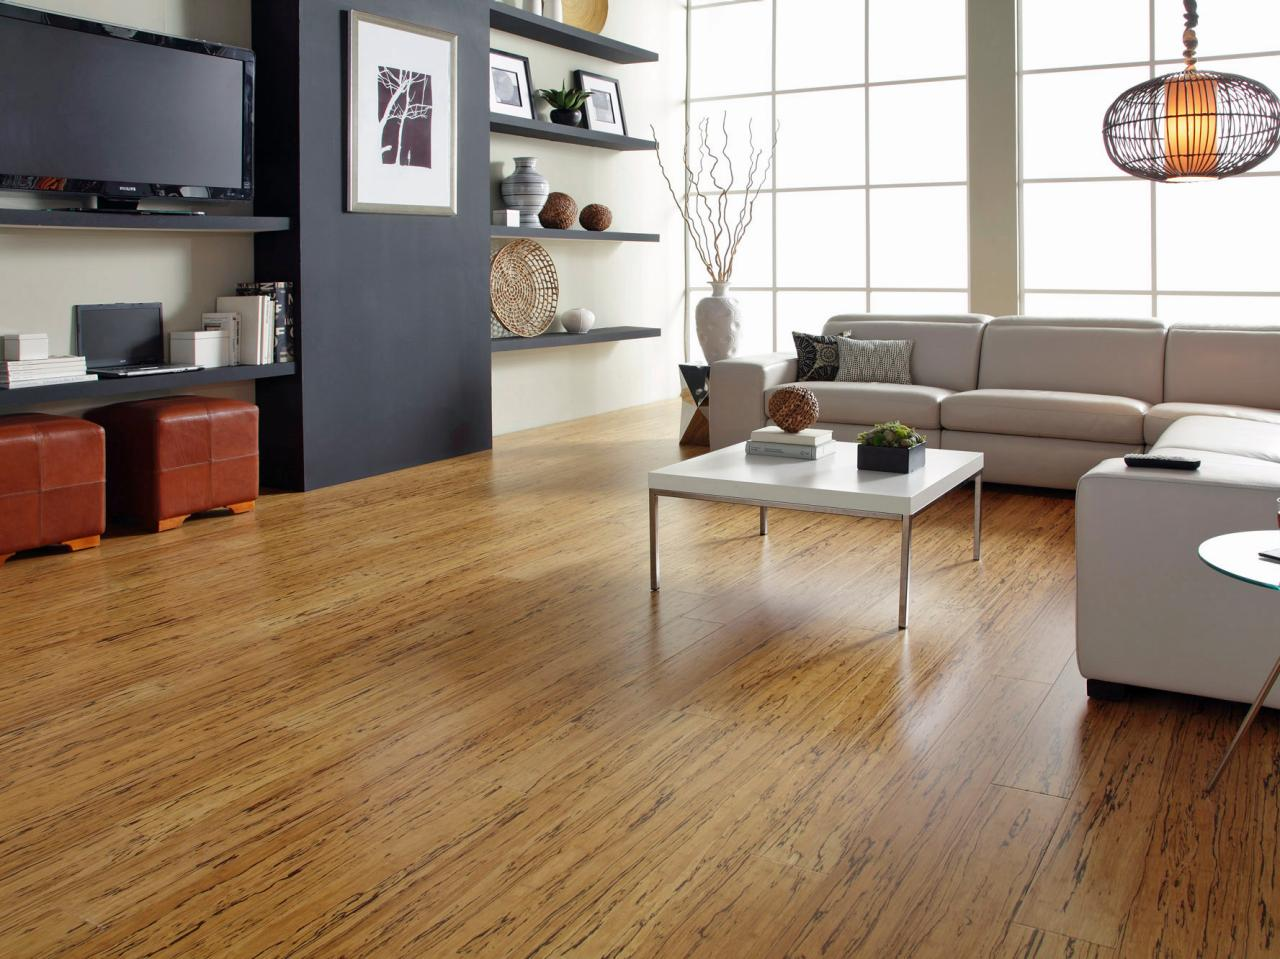 Laminat Modern Modern Laminate Floor Design With Contemporary Interiors